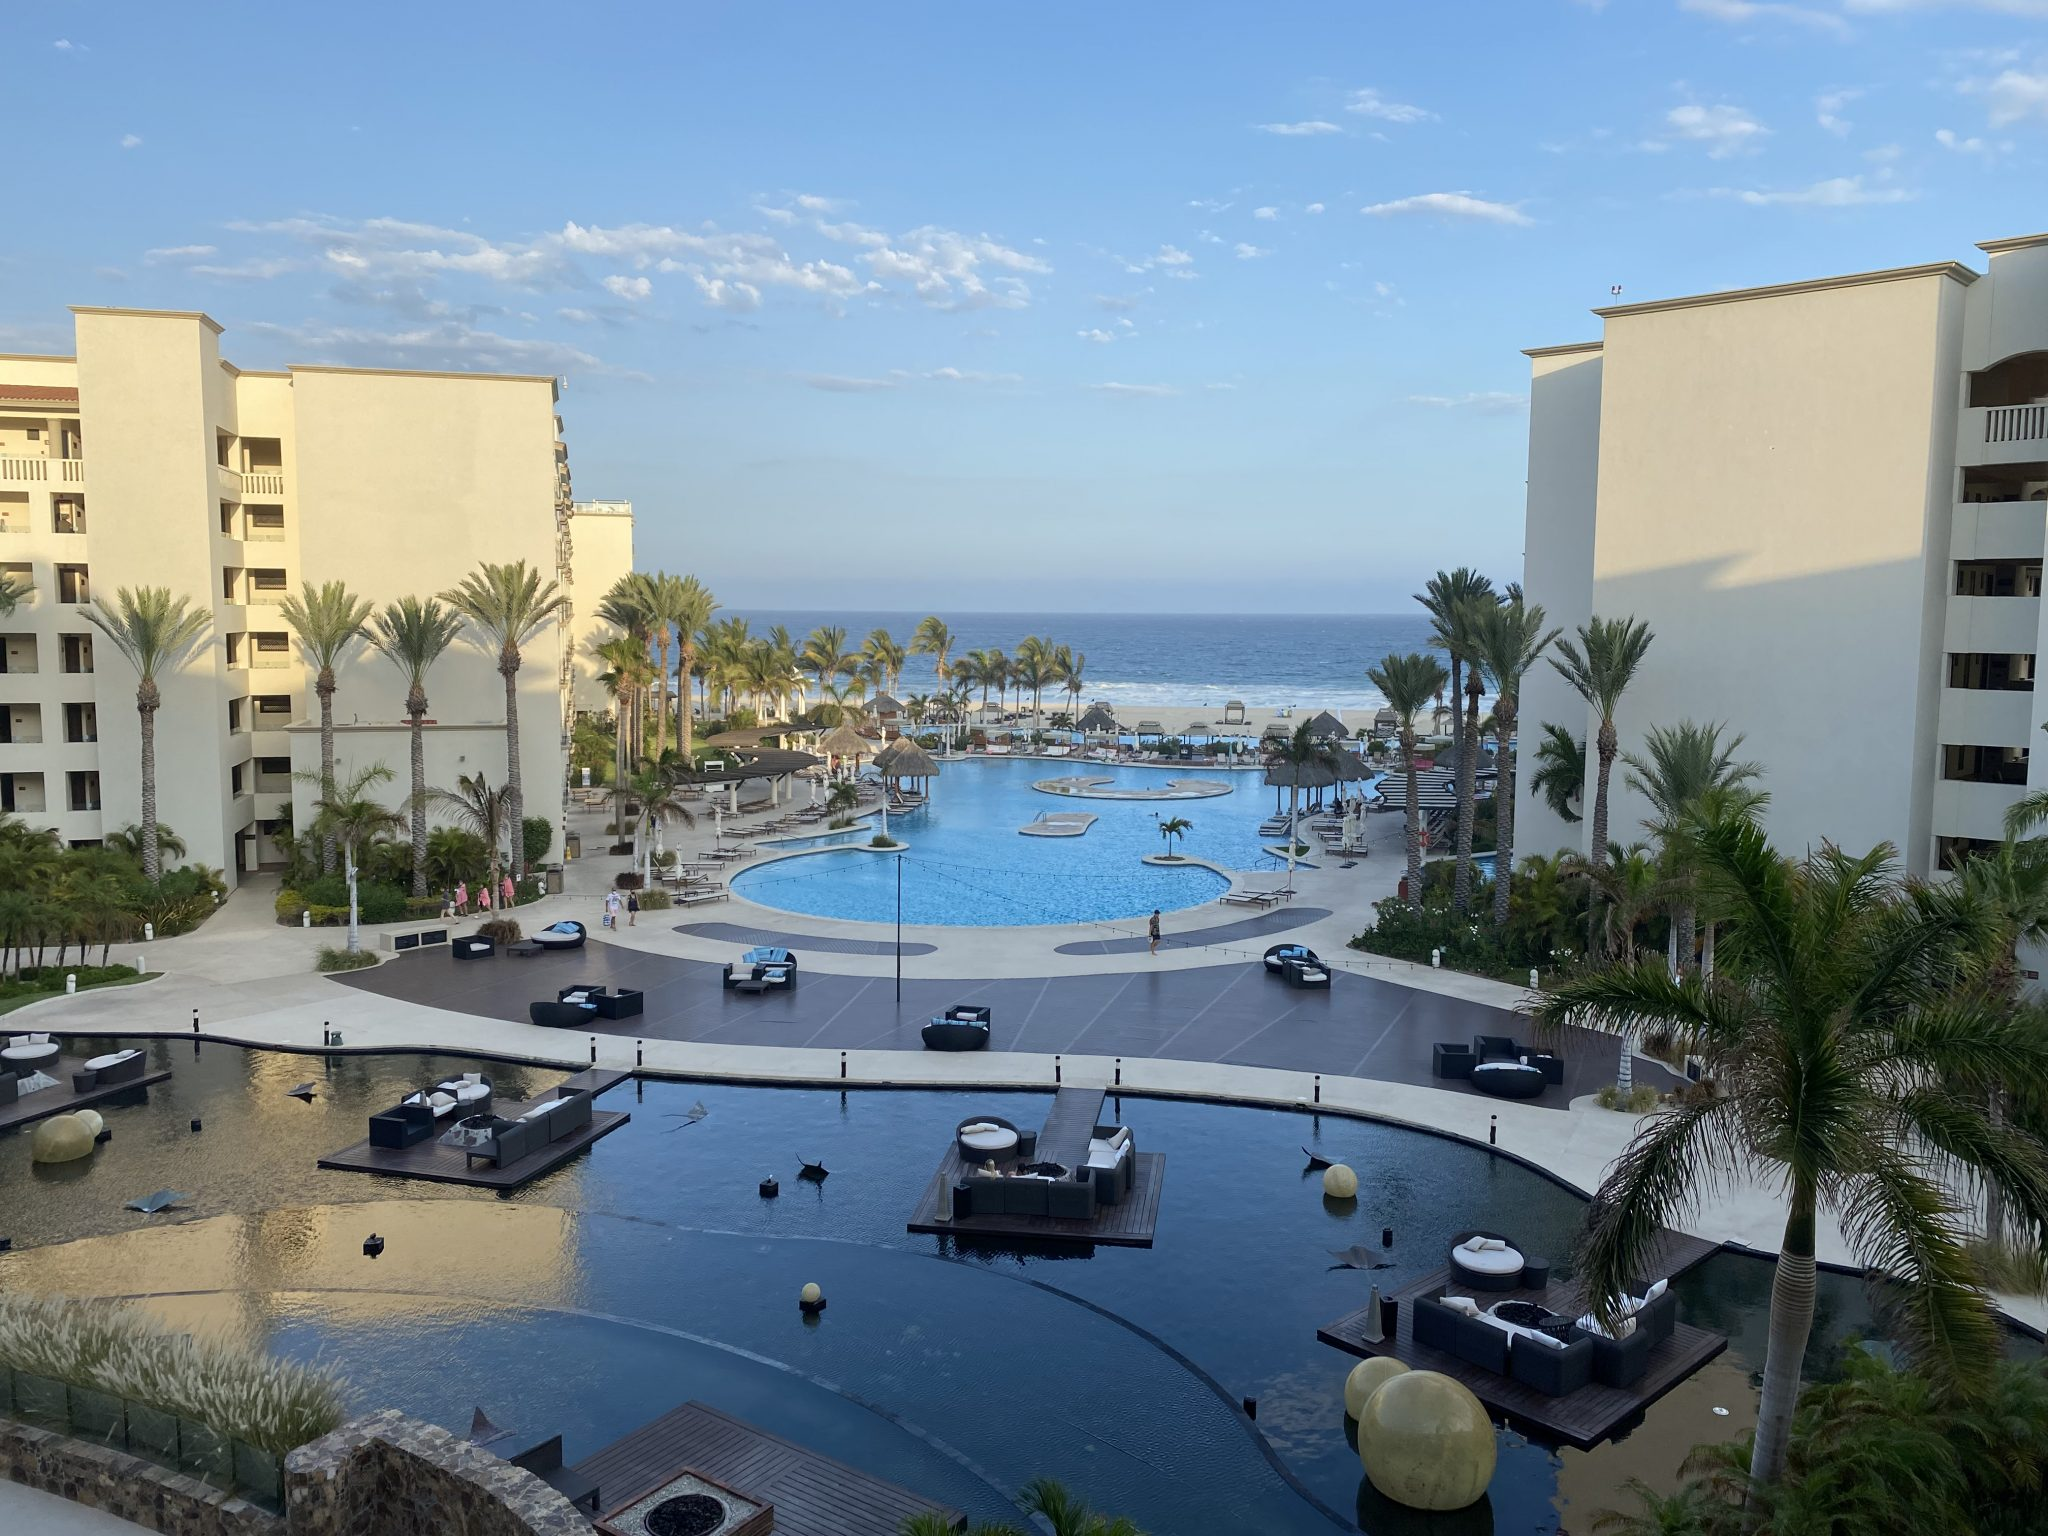 View from the lobby of the Hyatt Riva Resort looking out over the Sea of Cortez.